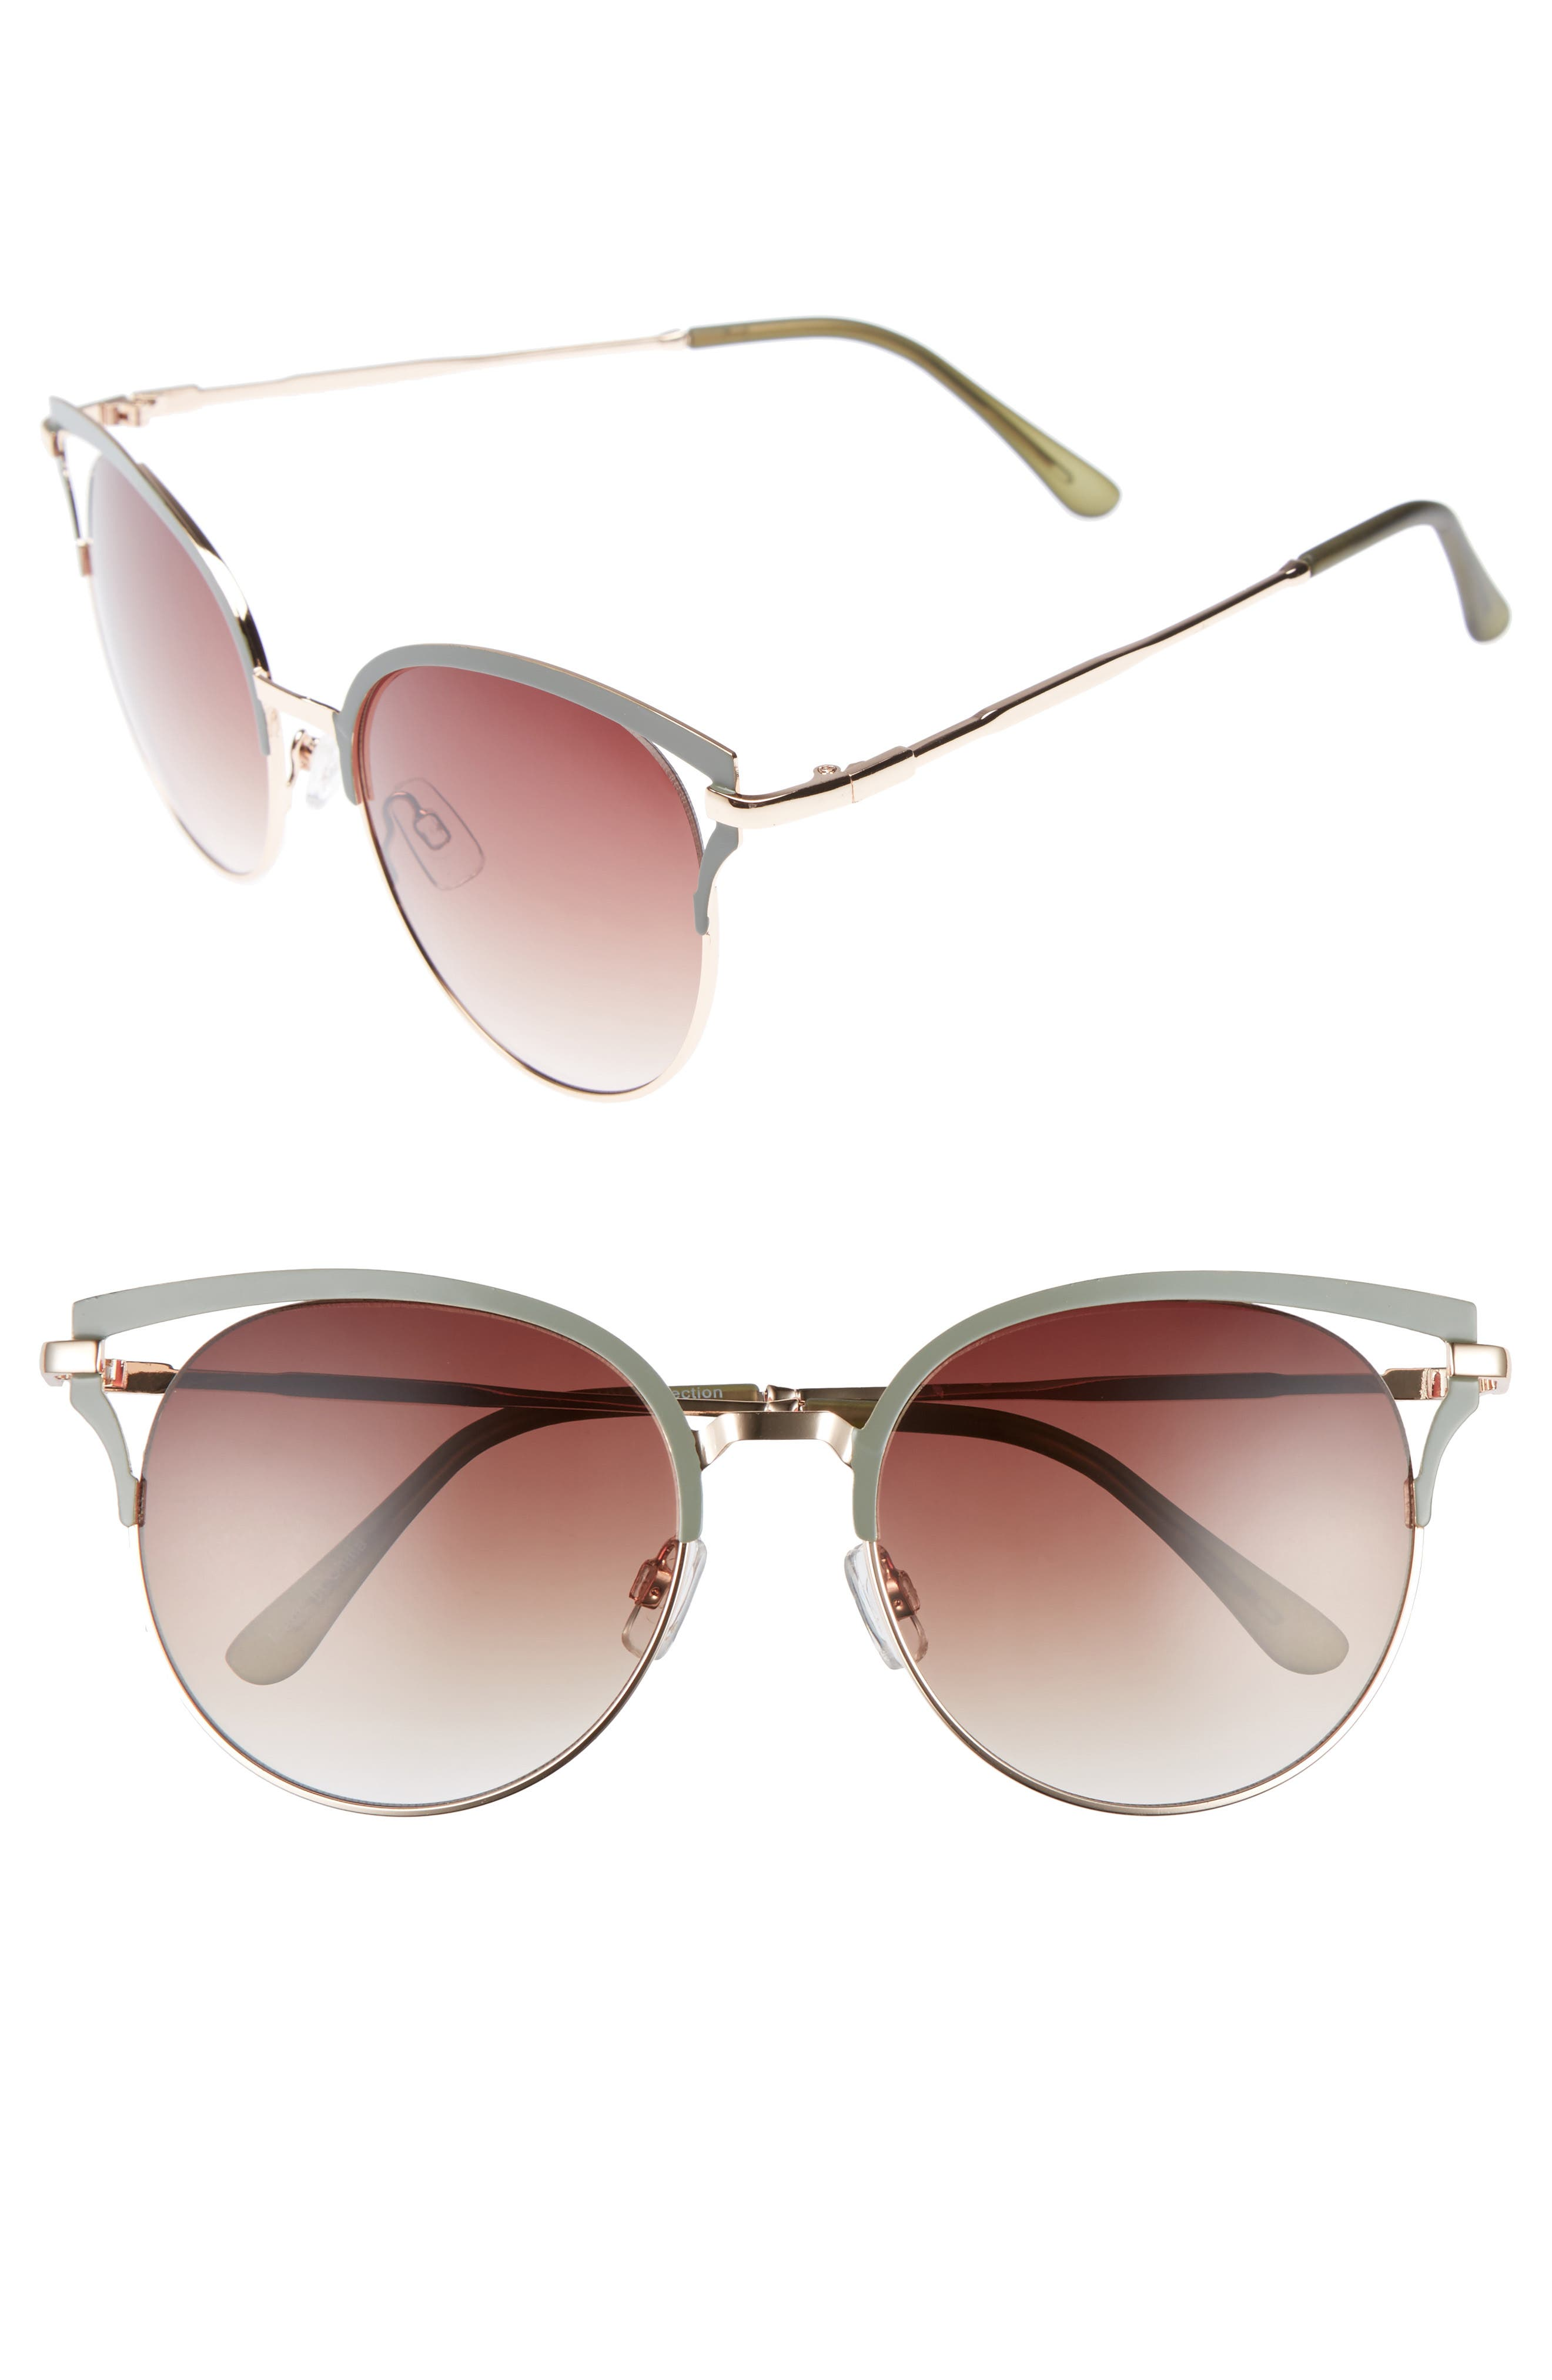 55mm Colored Round Sunglasses,                             Main thumbnail 1, color,                             300